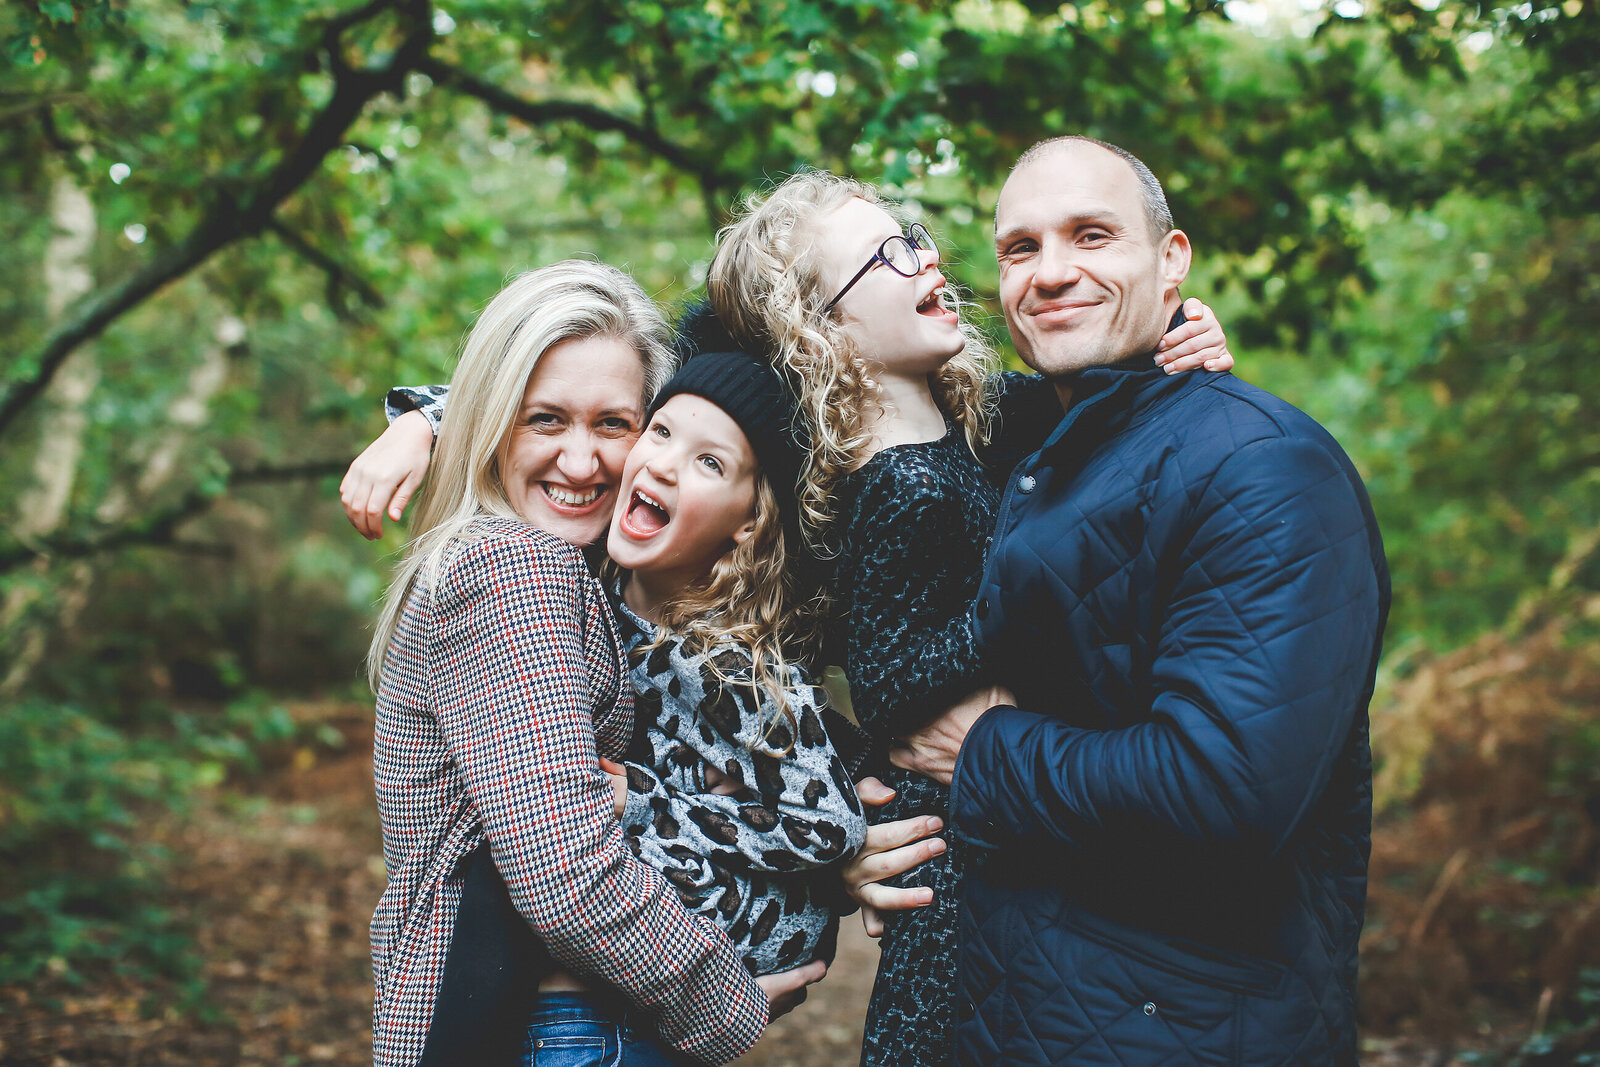 FAMILY-PHOTOGRAPHER-IN-MILFORD-SURREY-HANNAH-MACGREGOR-0001